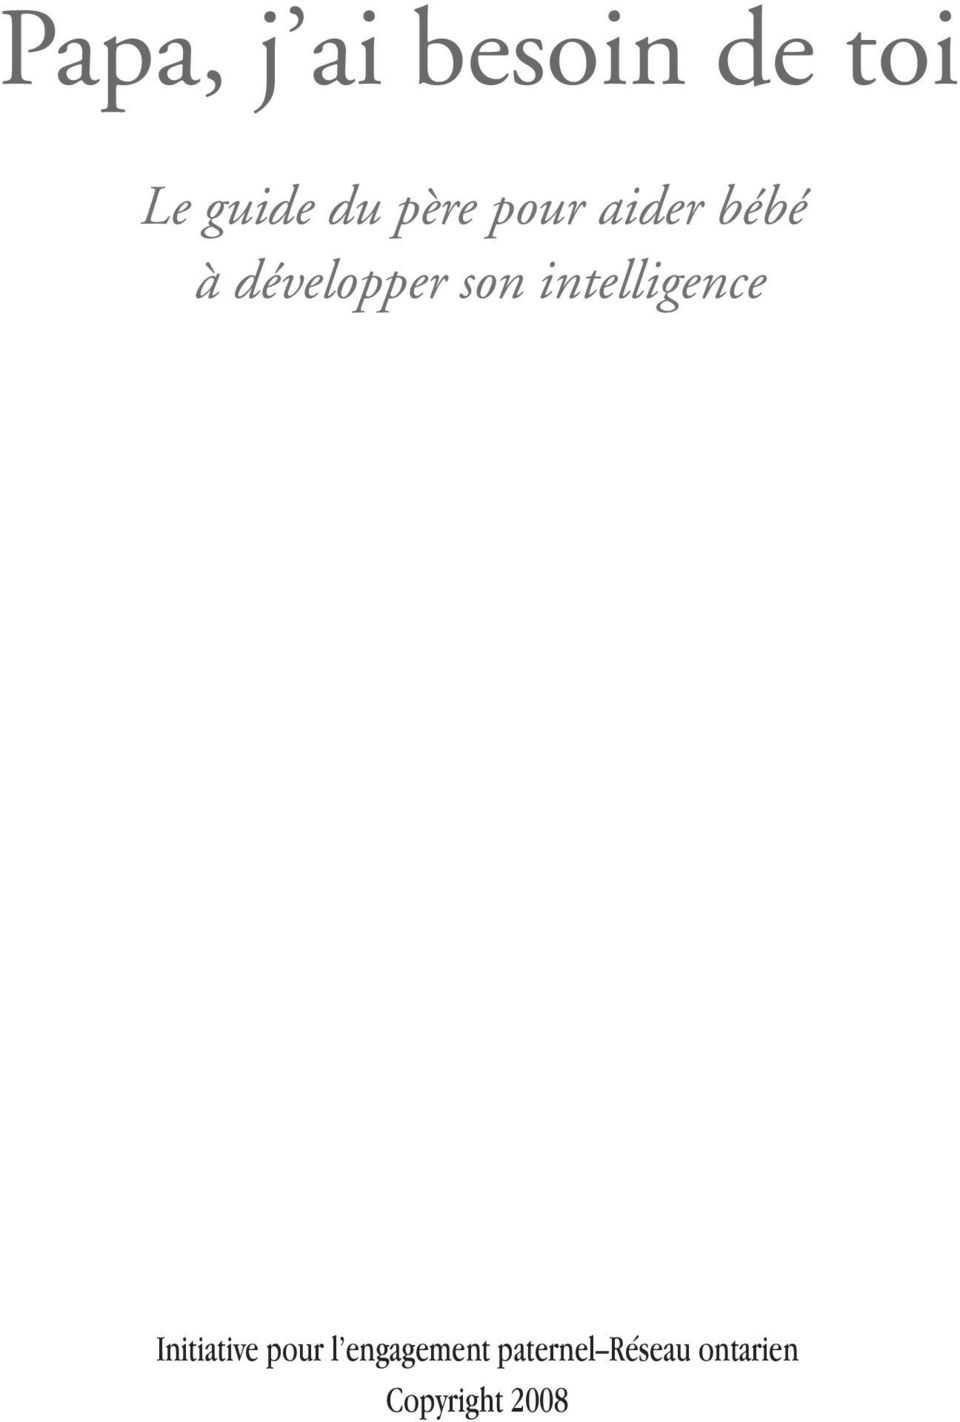 intelligence Initiative pour